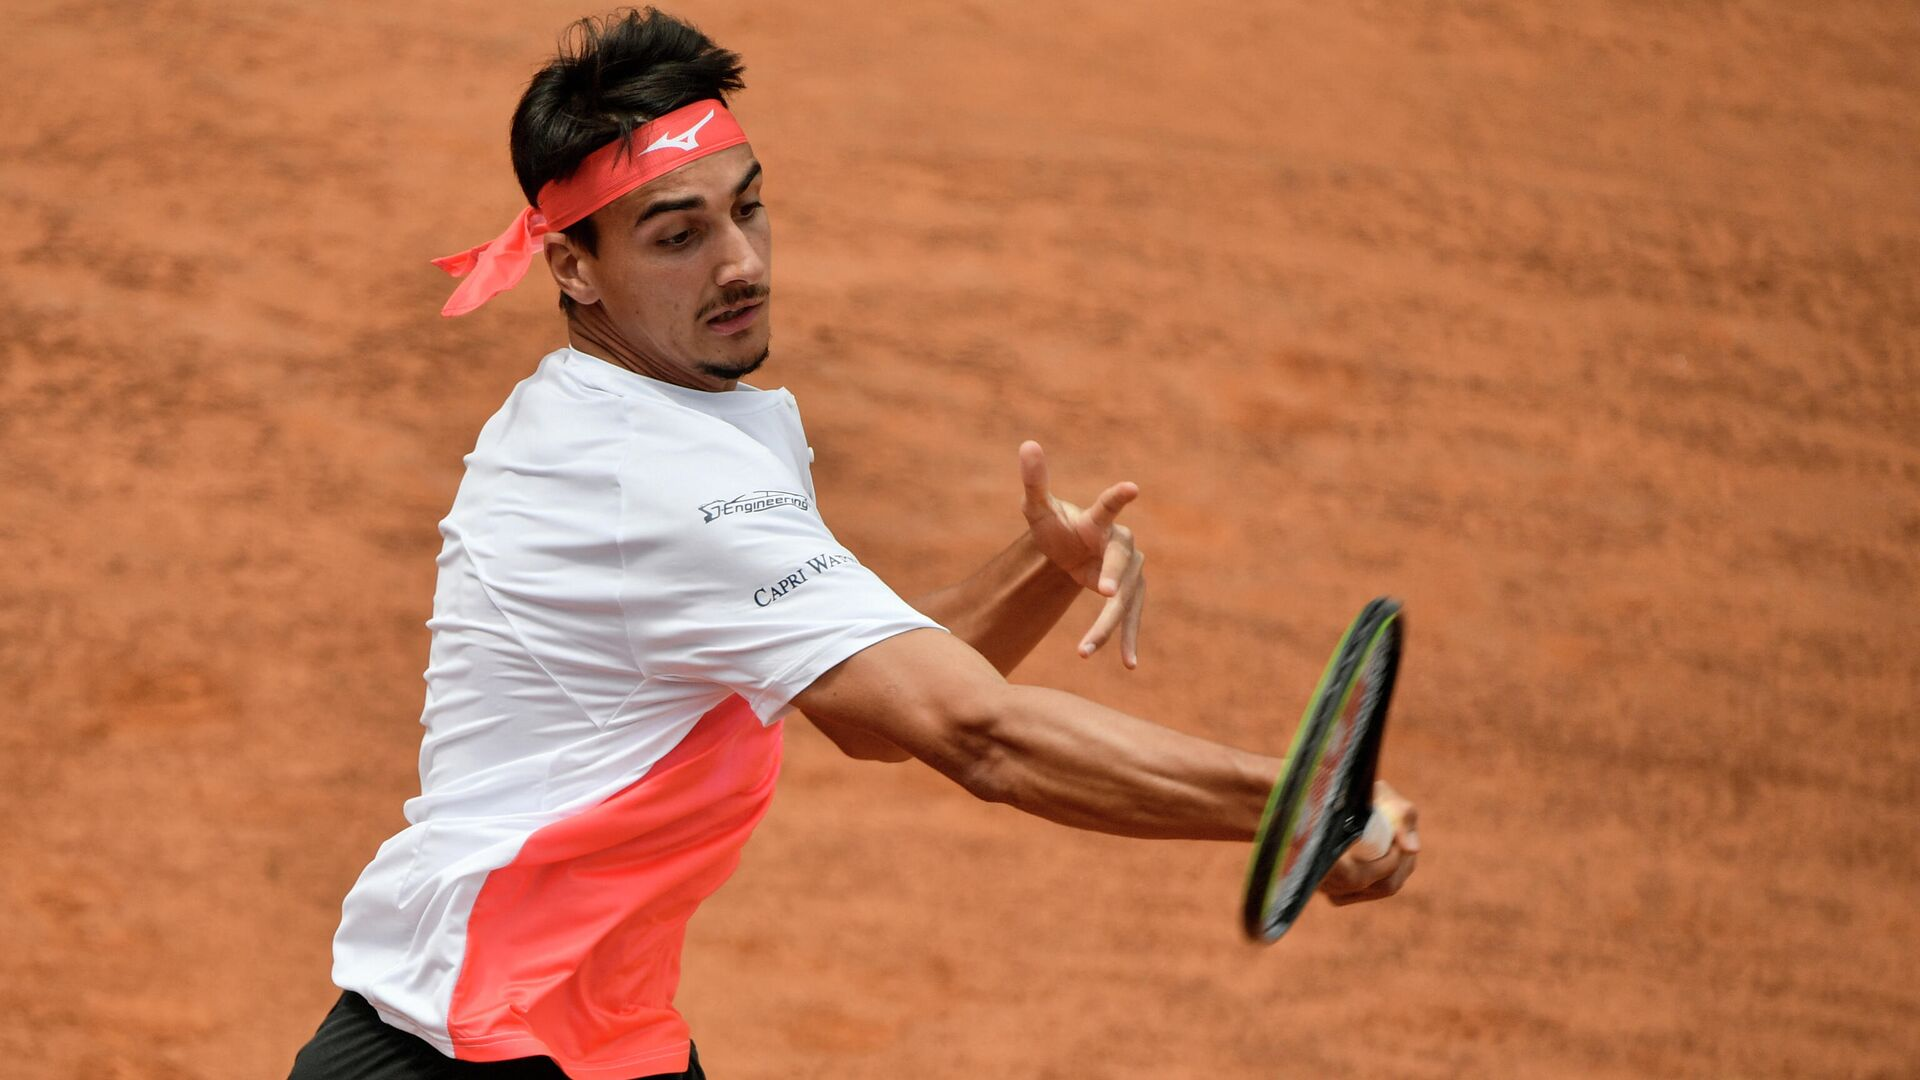 Italy's Lorenzo Sonego returns a forehand to France's Gael Monfils during their first round match of the Men's Italian Open at Foro Italico on May 11, 2021 in Rome, Italy. (Photo by Filippo MONTEFORTE / AFP) - РИА Новости, 1920, 14.05.2021